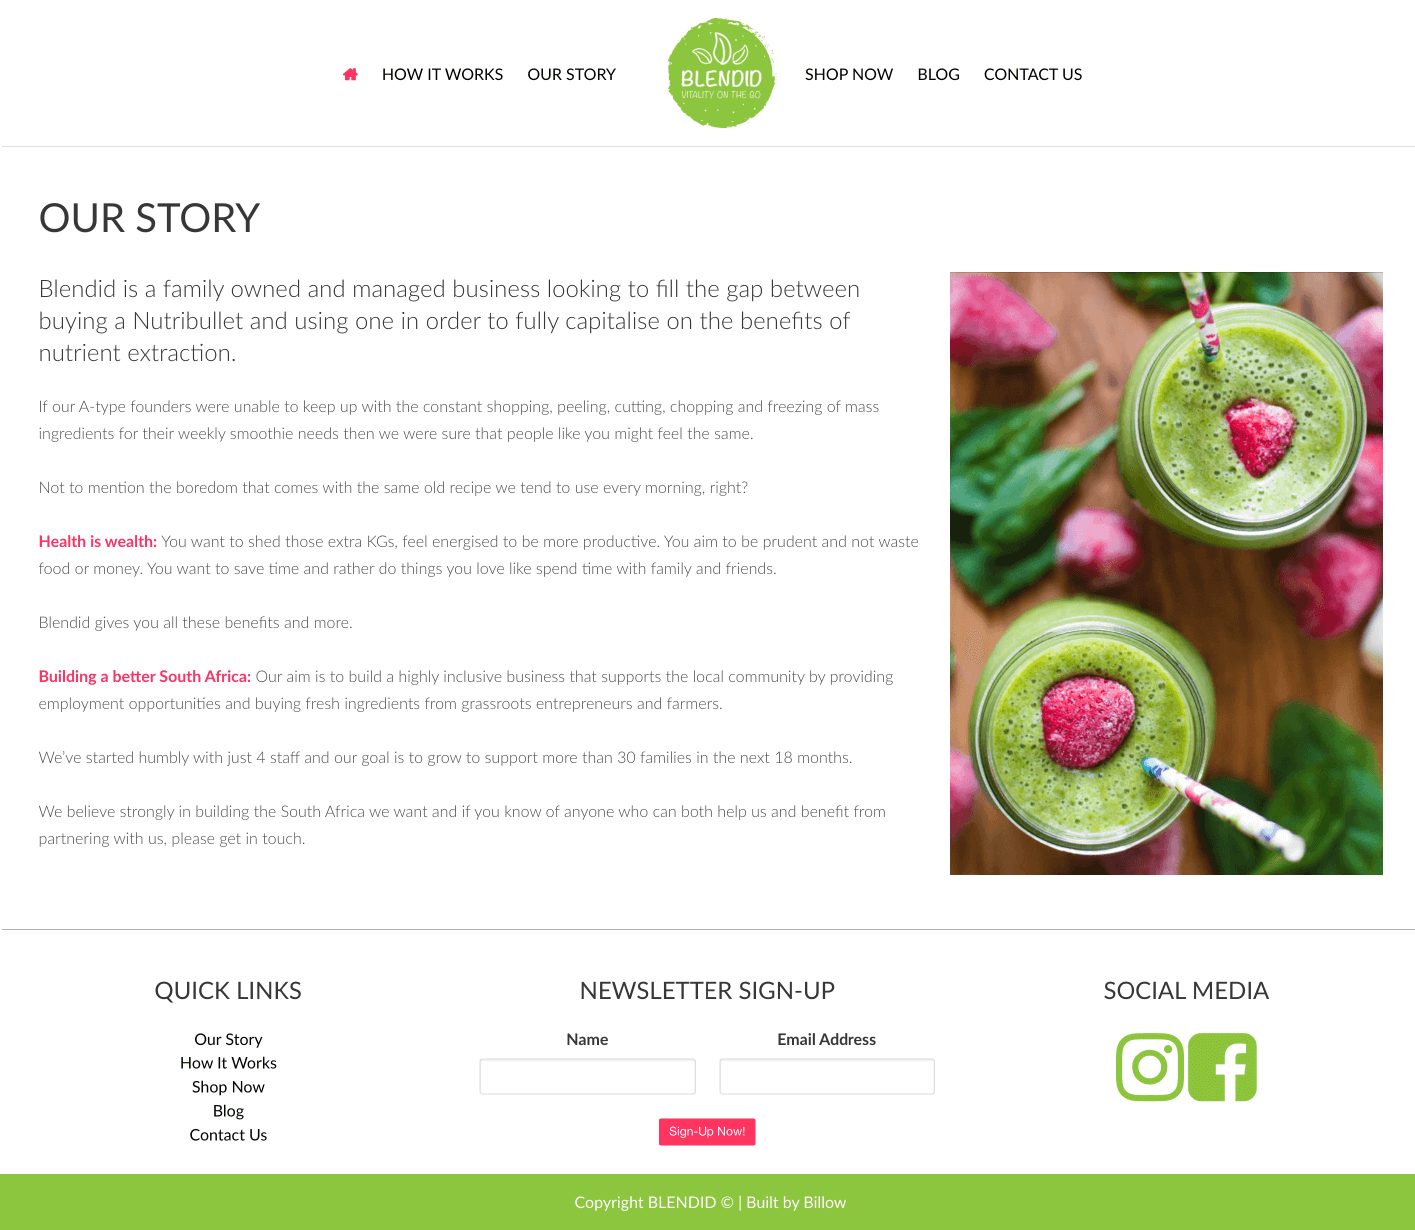 Blendid website by Billow